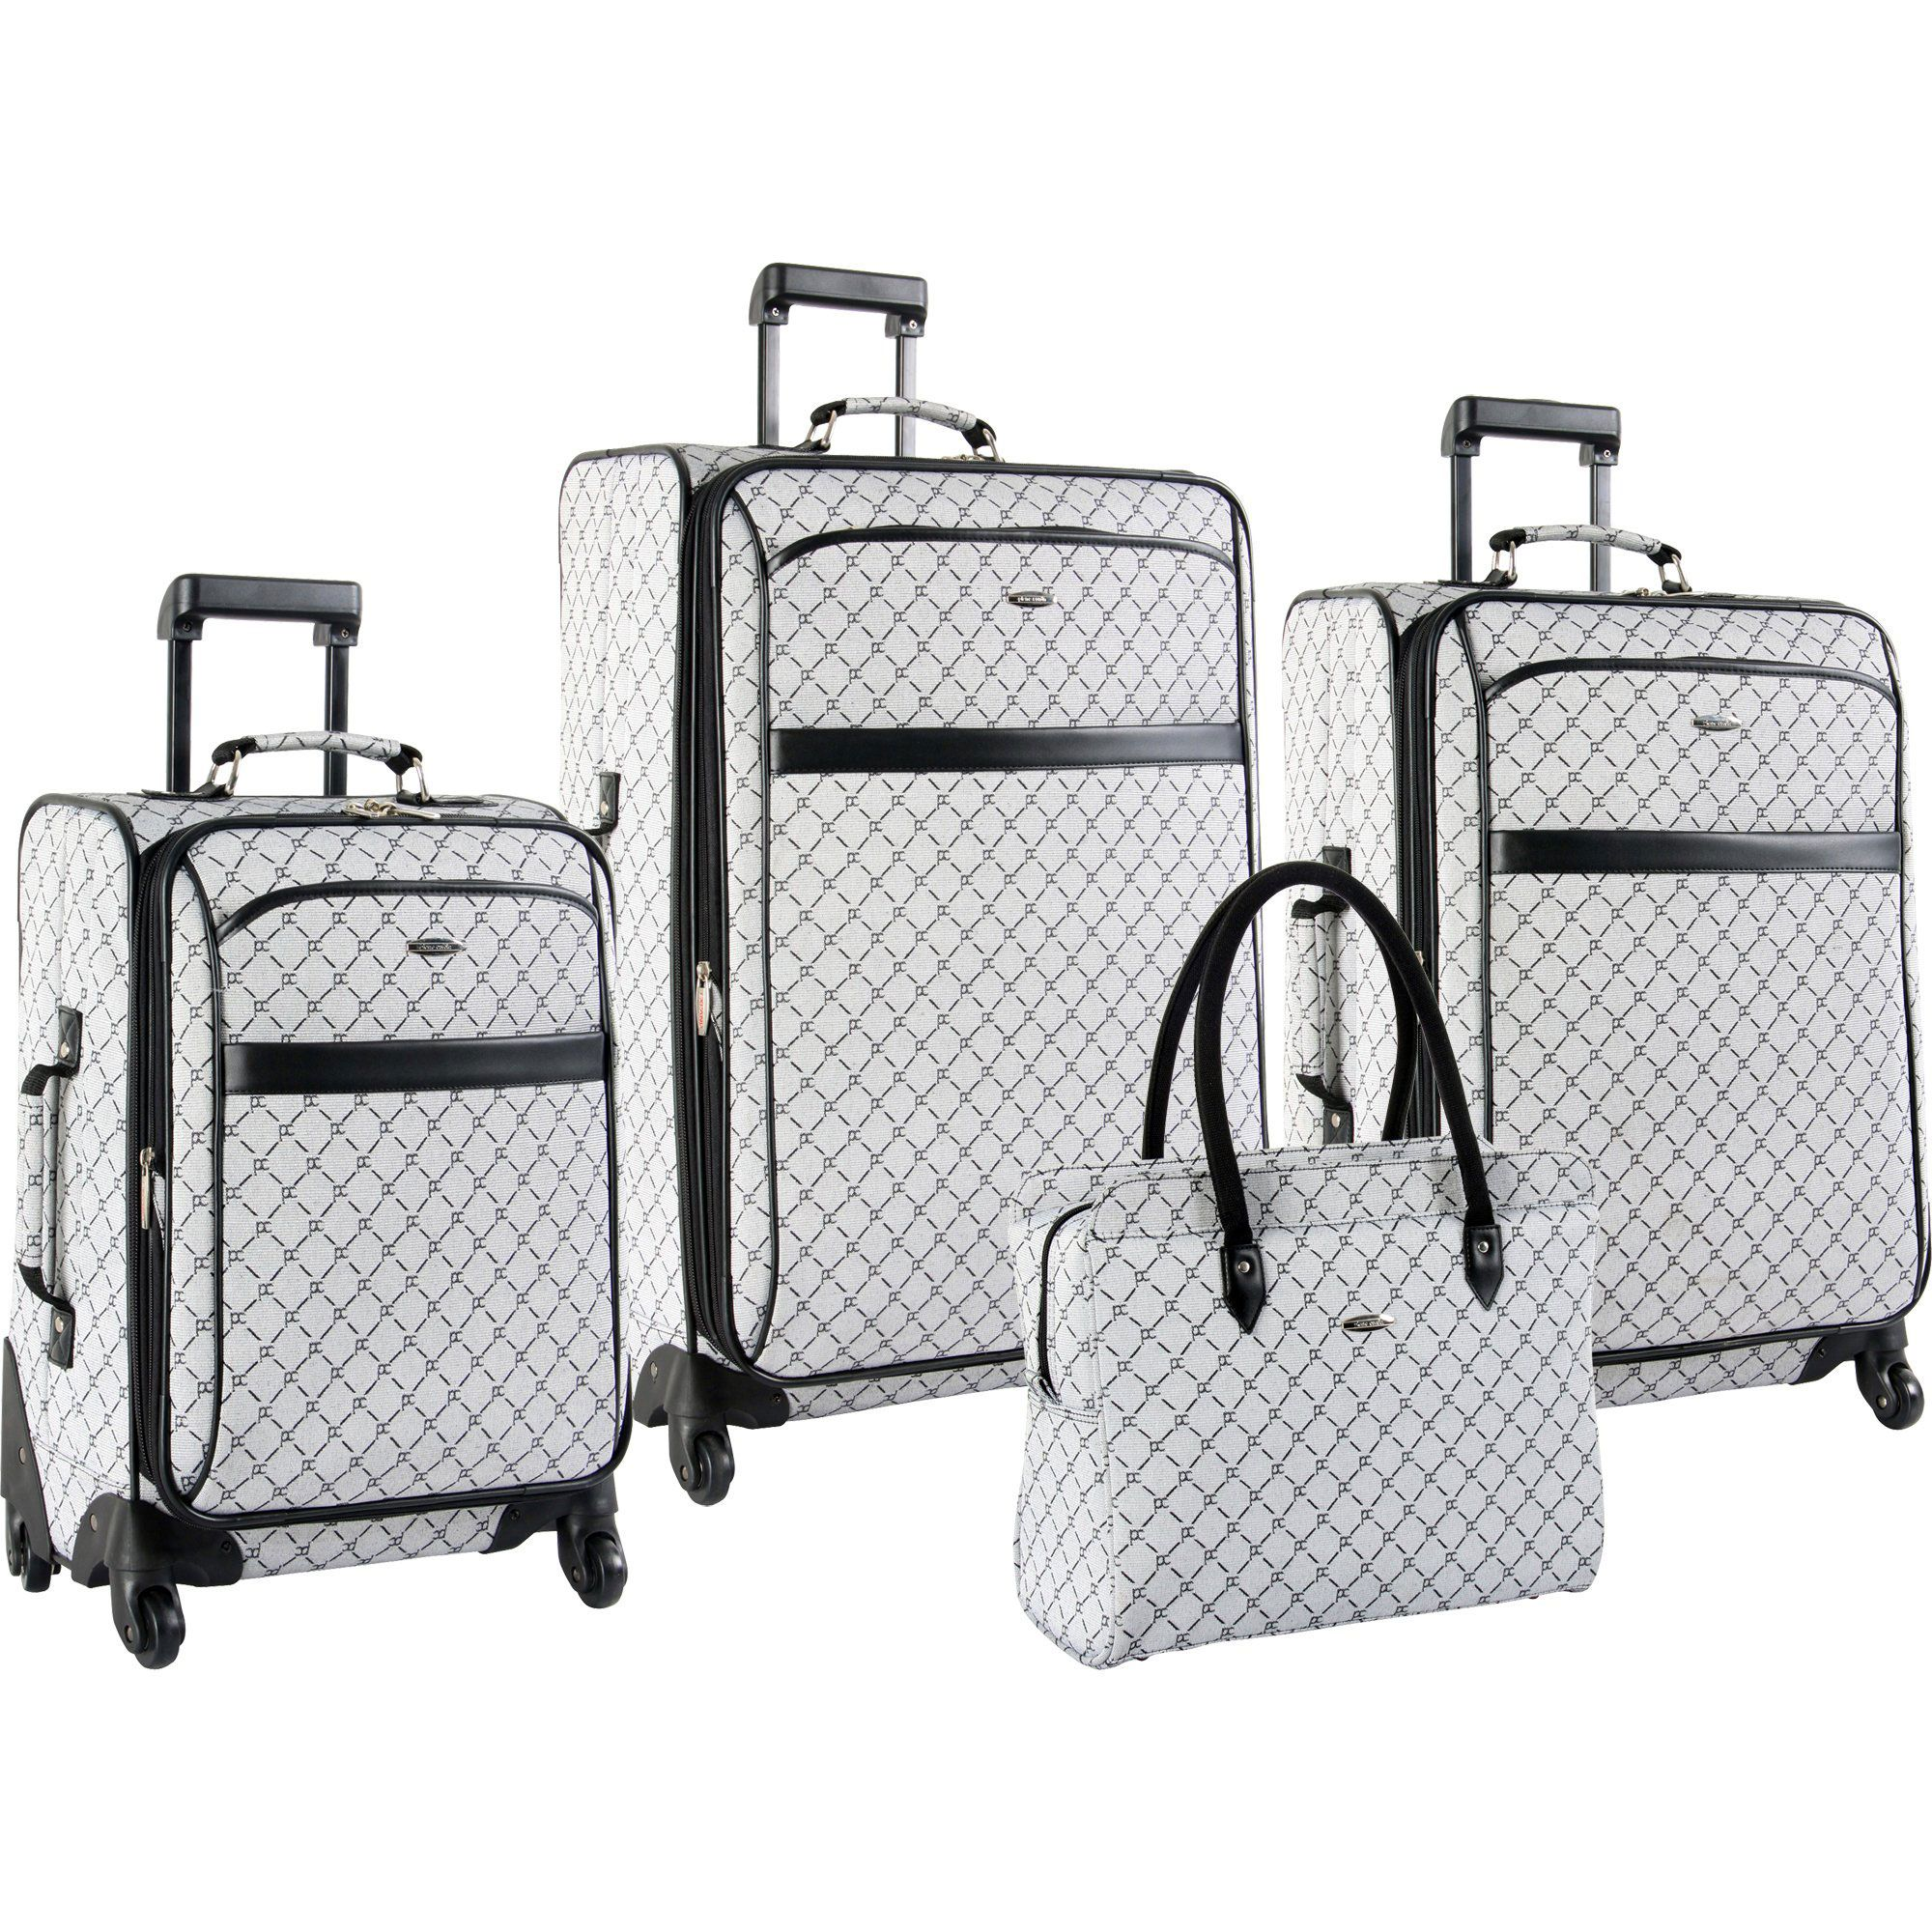 Designer Luggage Sets http://www.buynowsignal.com/garment-bag ...